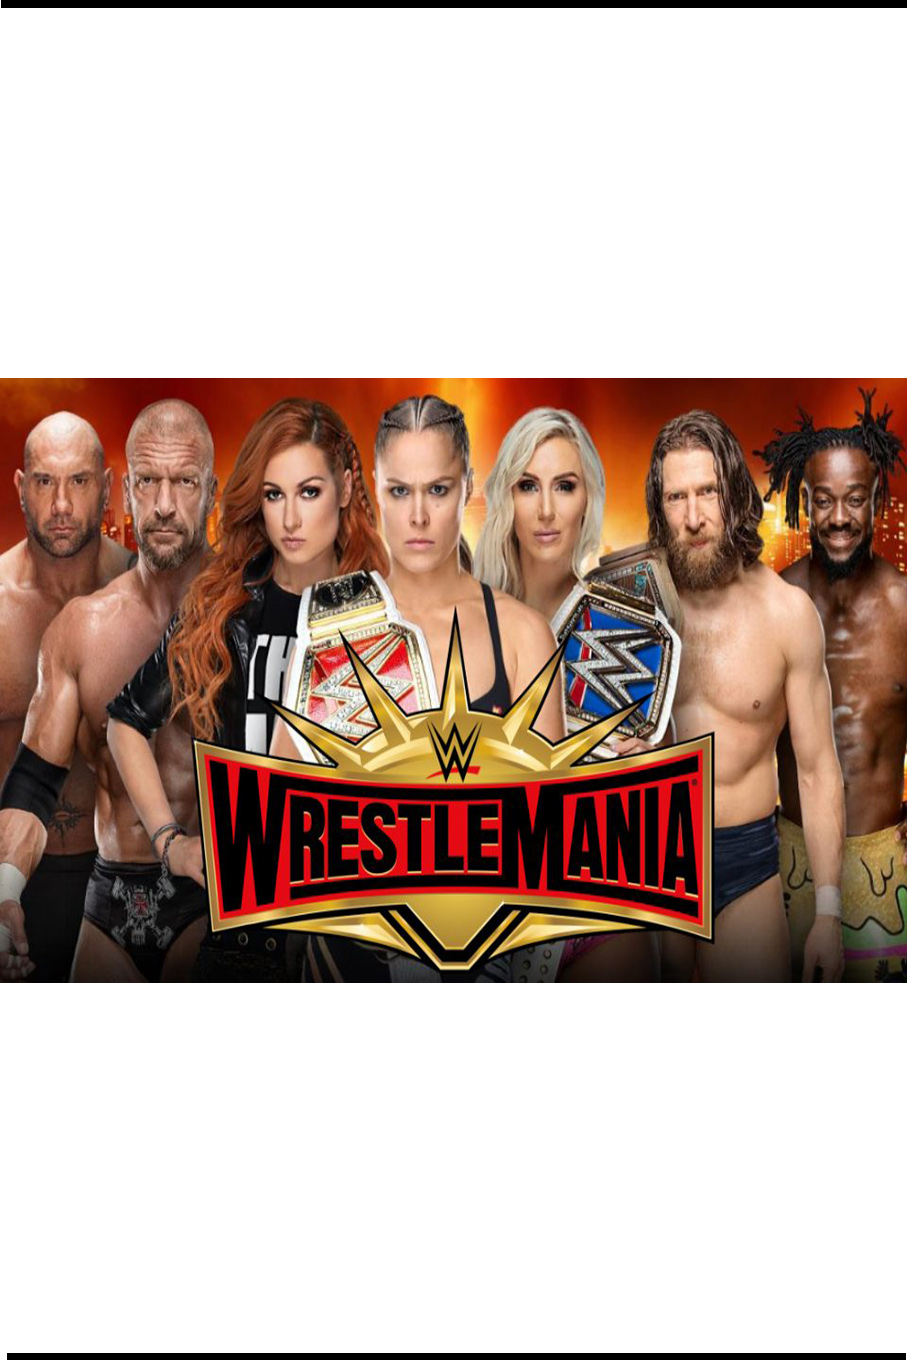 WWE WrestleMania 35 [2019 USA Show] Sport